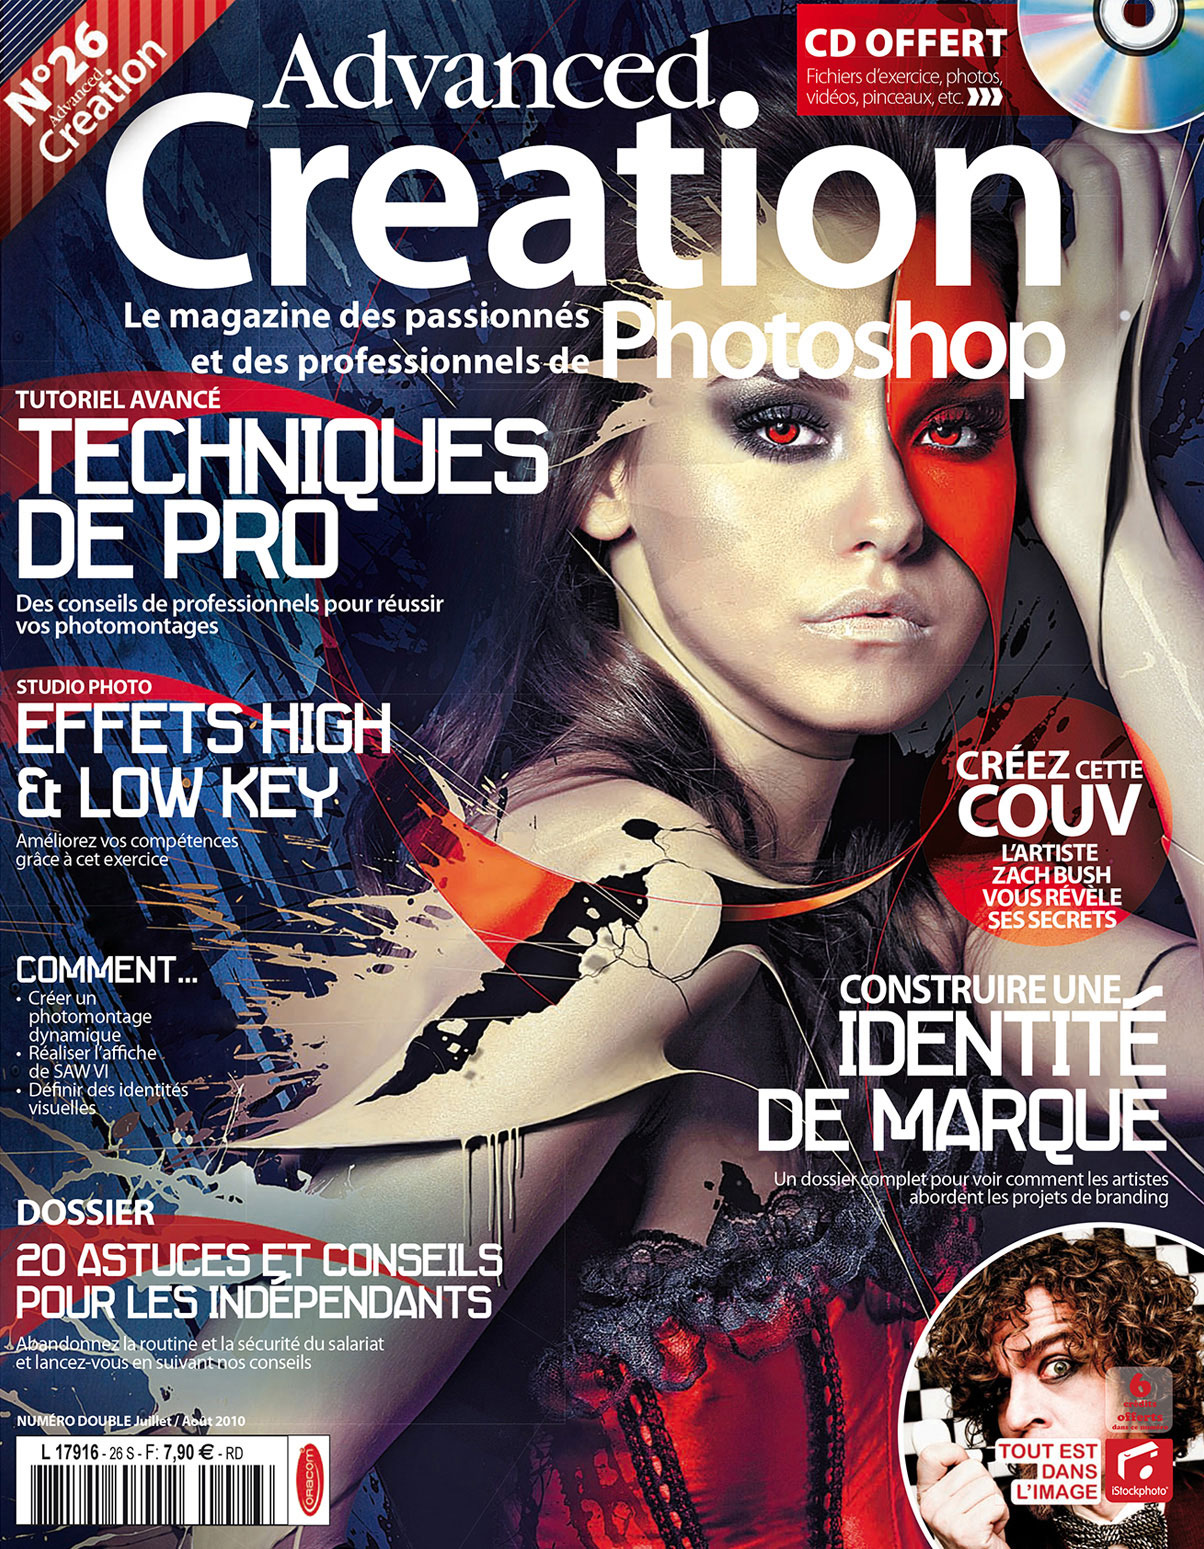 Presse – ID Grafix dans Advanced Creation Photoshop